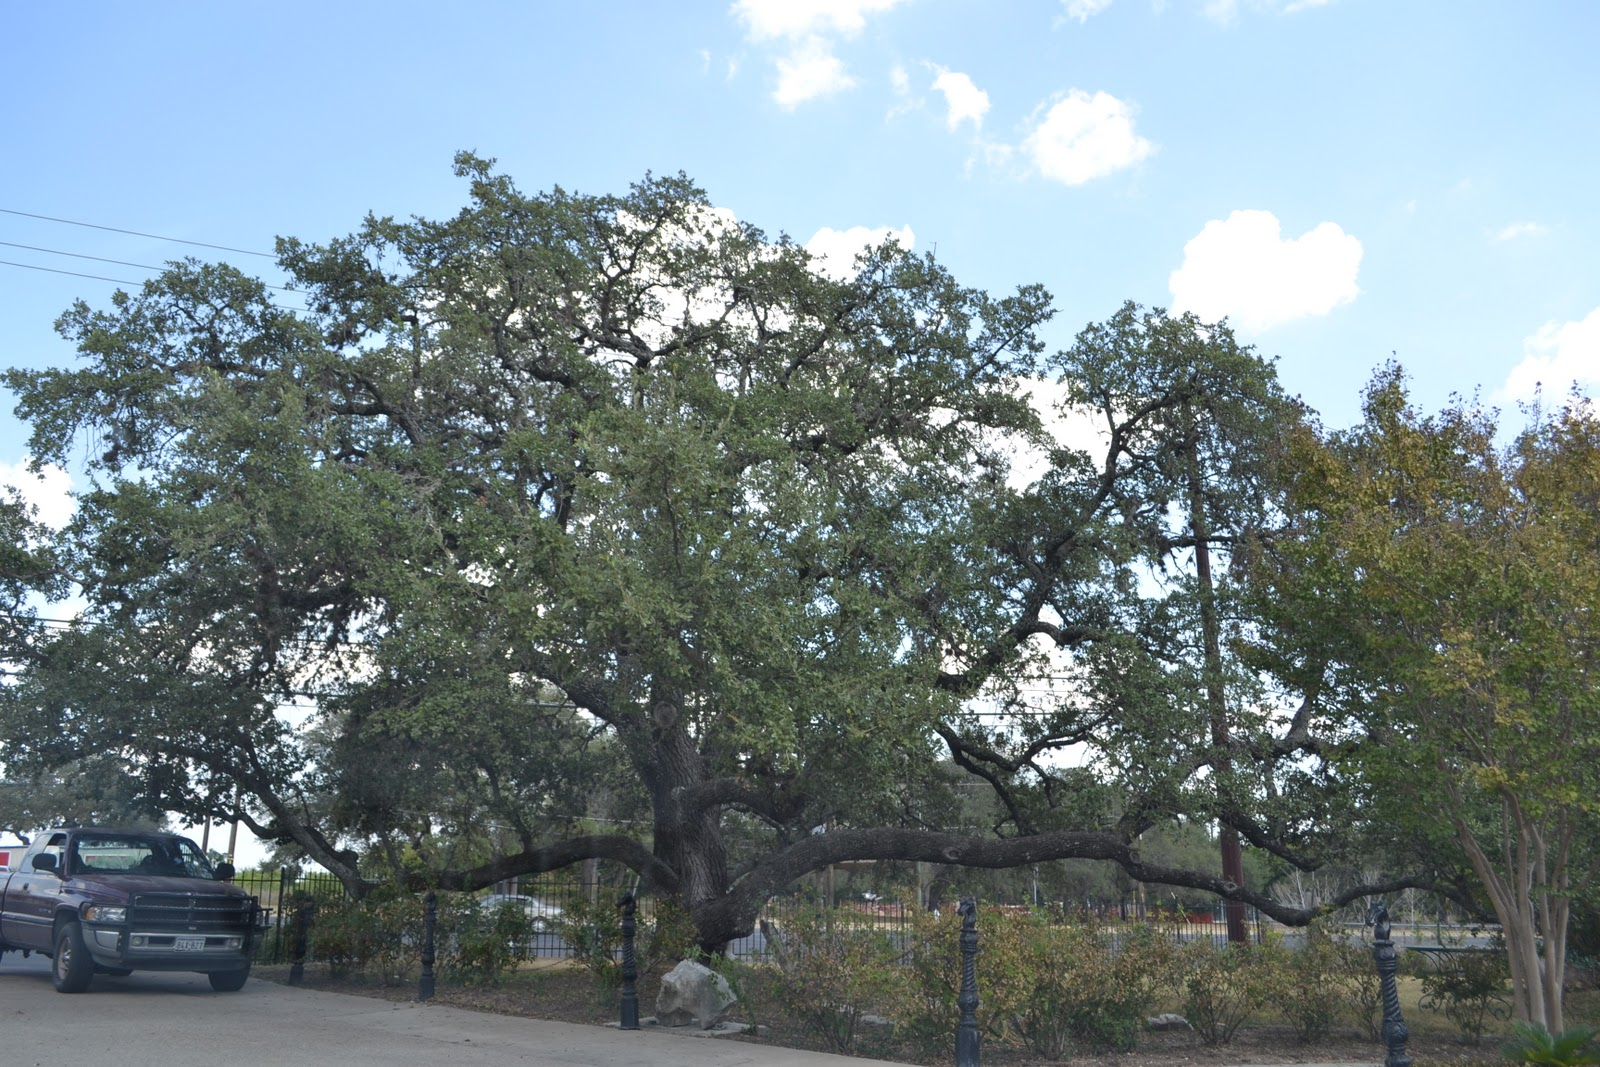 Oak folklore which enables the reader to see the reasoning behind the perspective of the oak tree being seen as a pathway to higher spiritual knowledge biocorpaavc